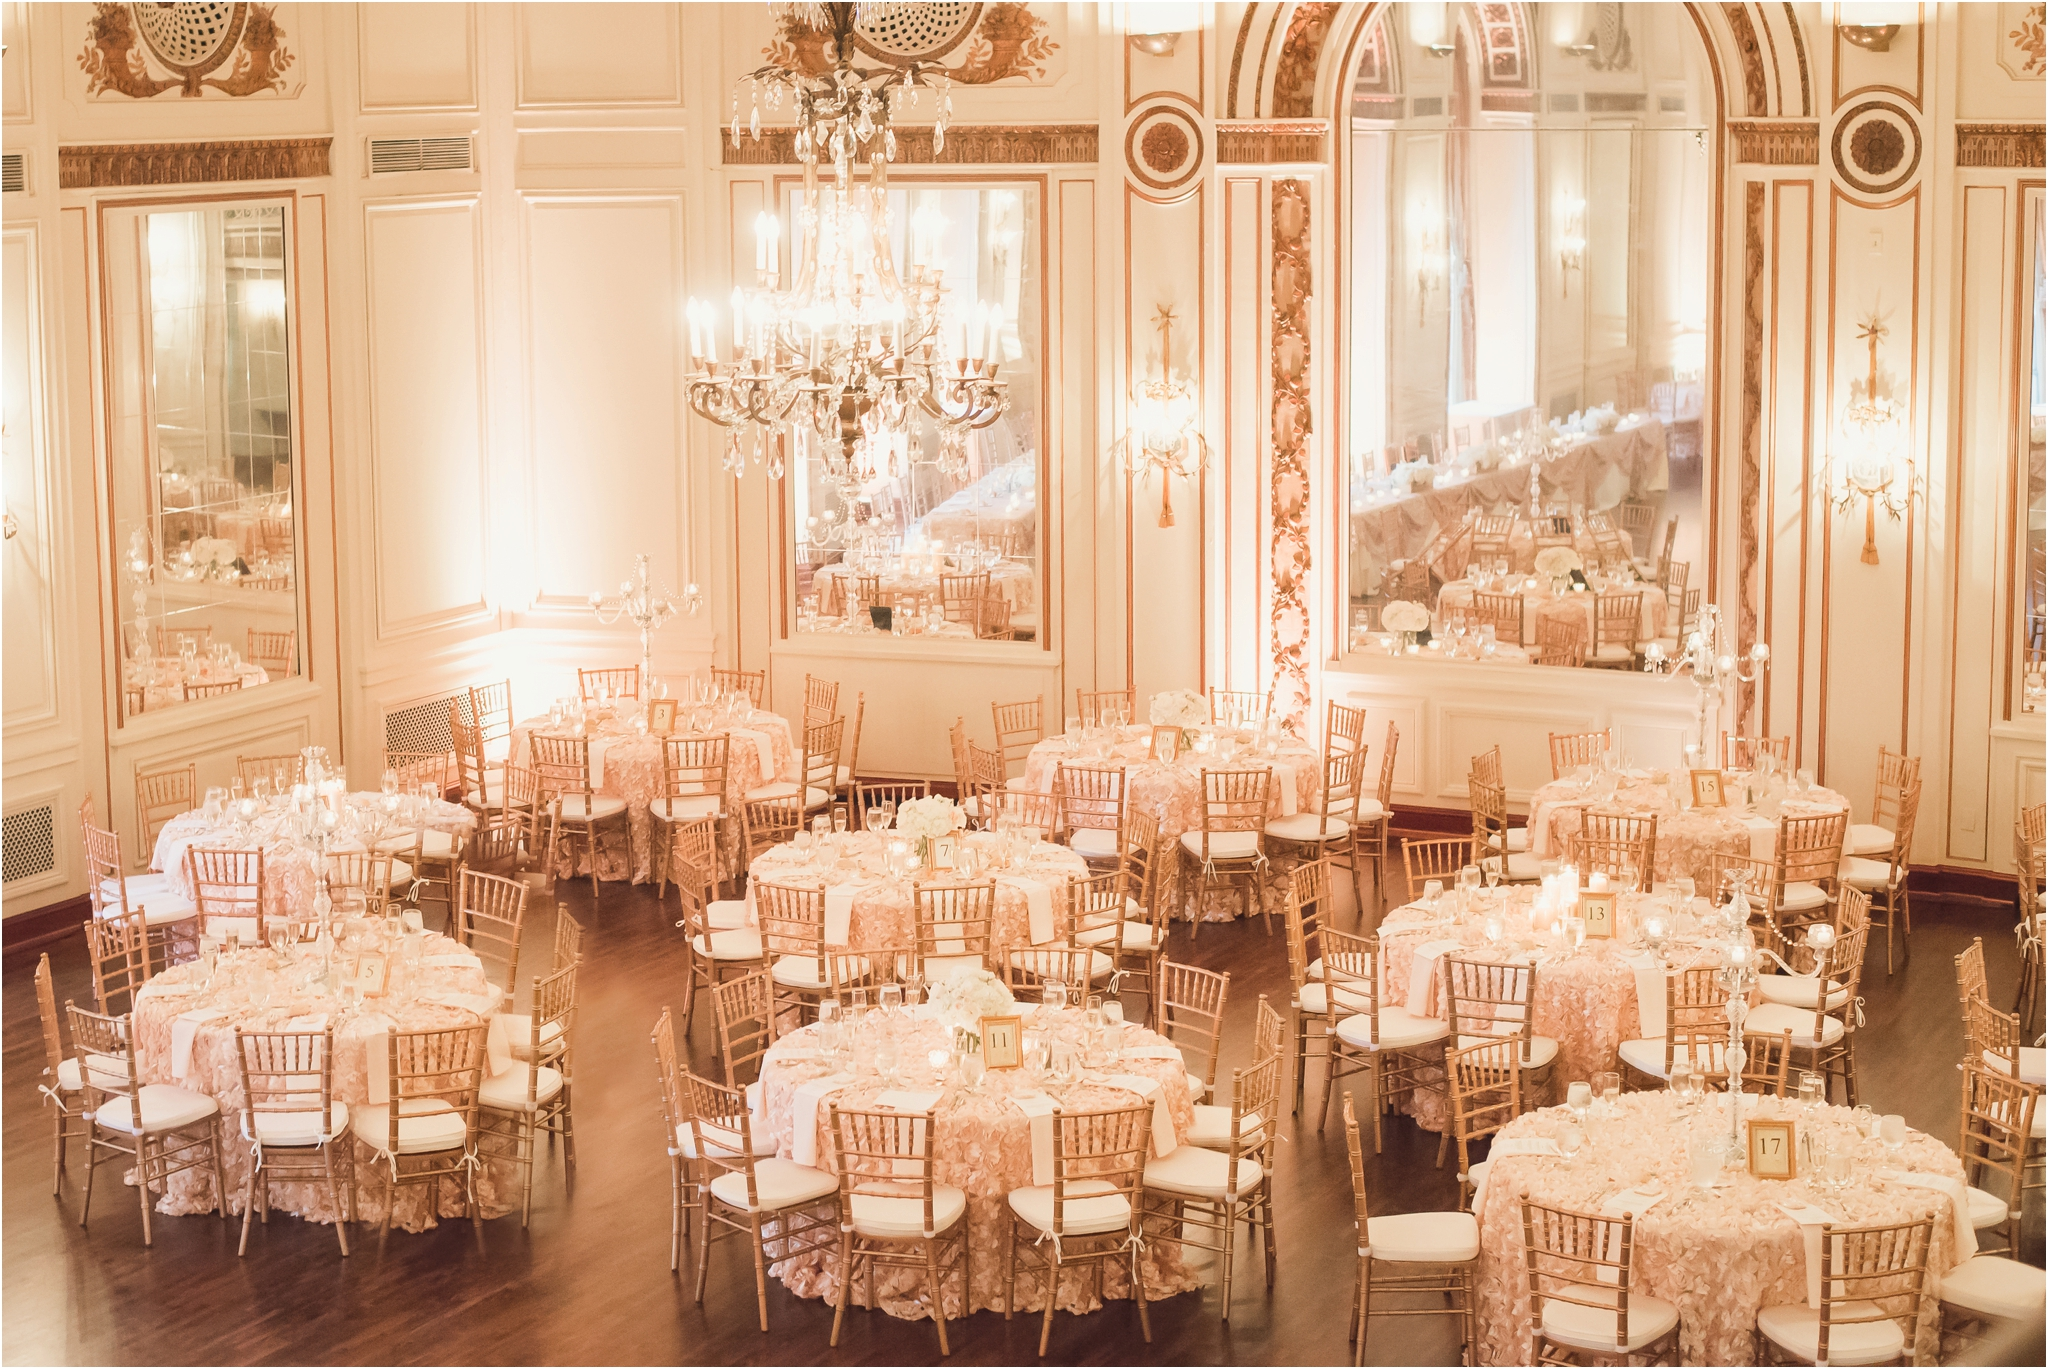 The Best Detroit Wedding Venues For Classic Bride: Detroit Michigan Wedding Venues At Websimilar.org